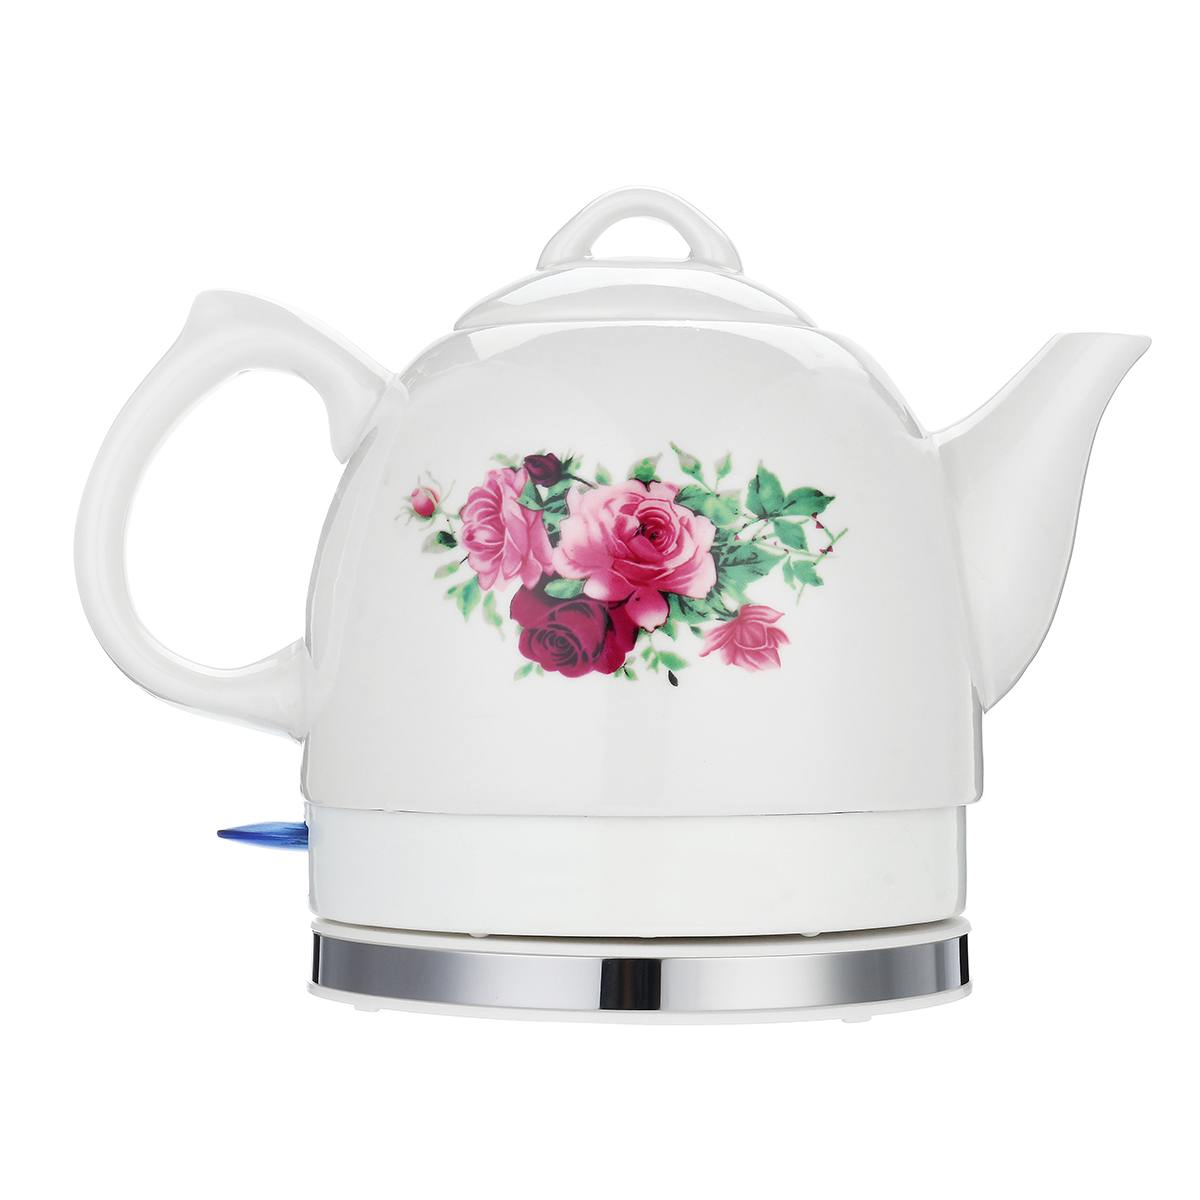 1 L Ceramic Electric Water Kettle High Power Heated Kettle With Safety Automatic power off Function Quick Boiling Hot Tea Pot